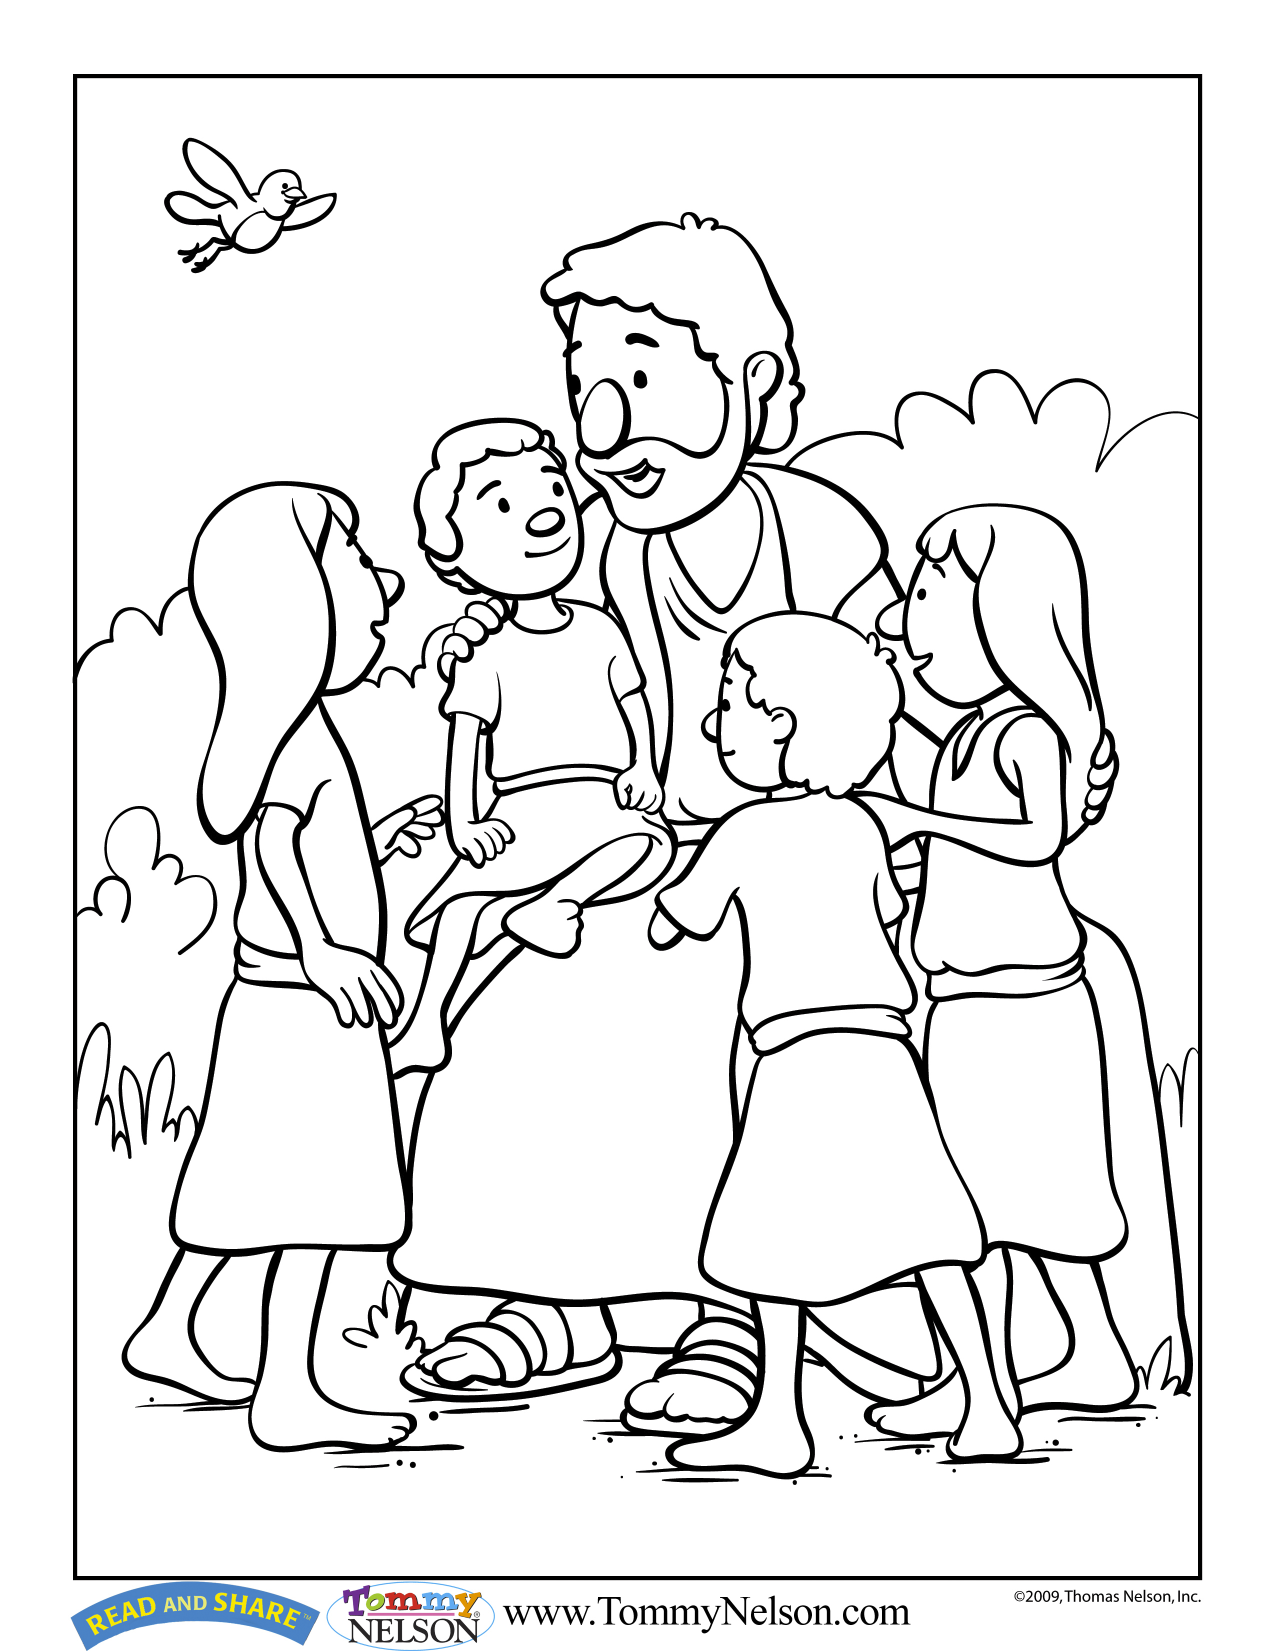 Read And Share Coloring Book